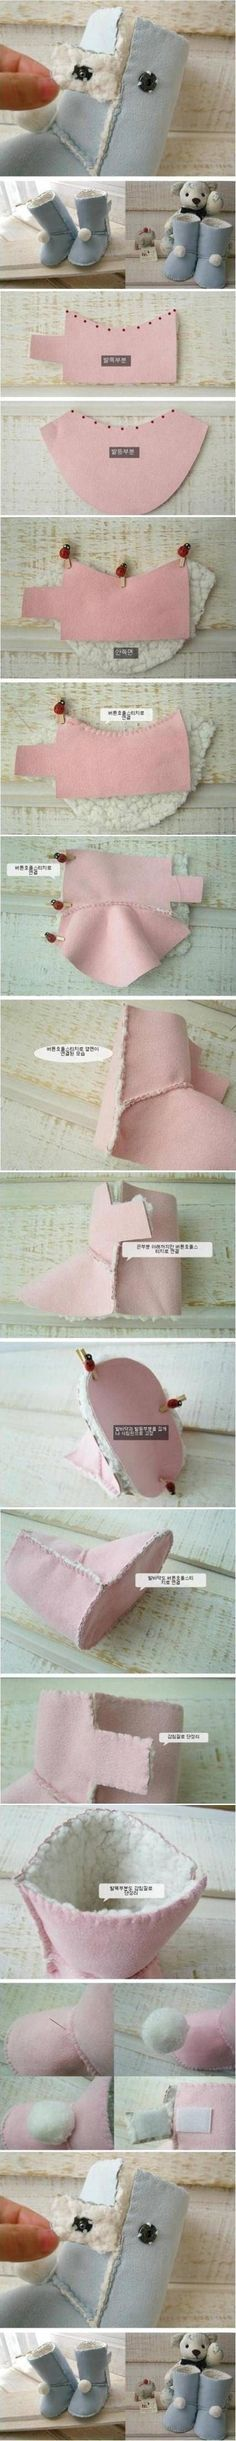 How-To-Make-Your-Own-Ugg-Boots Pictures, Photos, and Images for Facebook, Tumblr, Pinterest, and Twitter